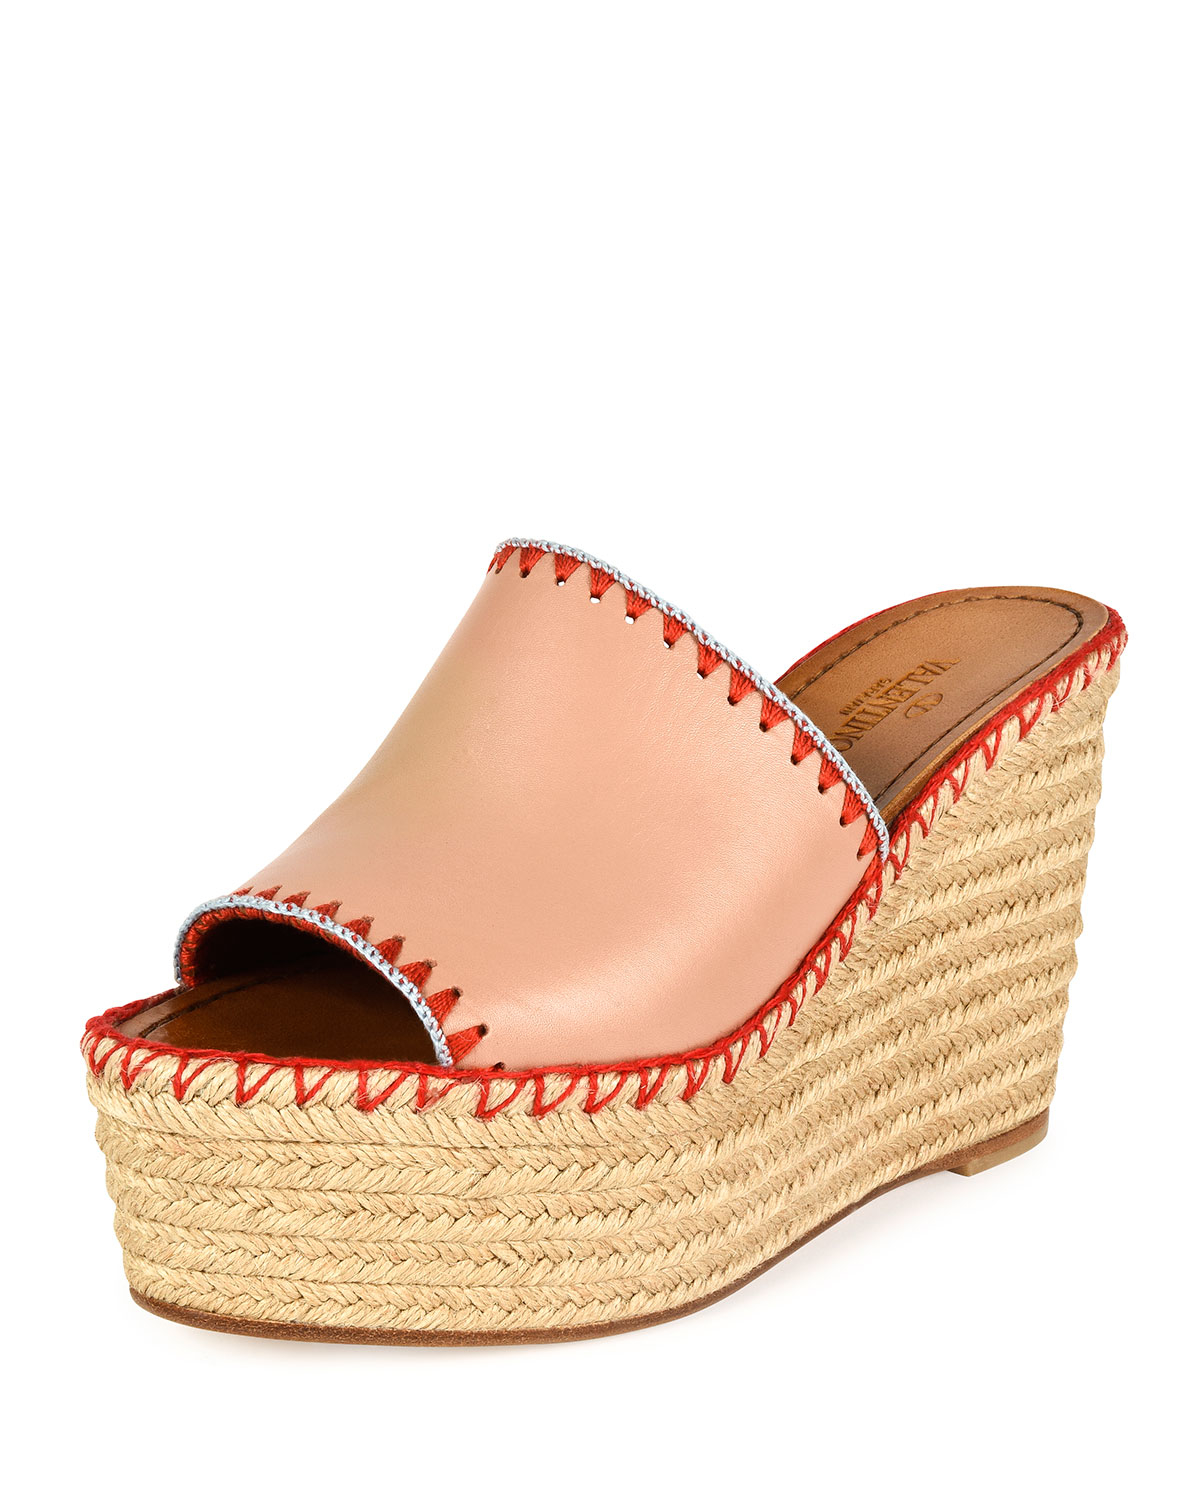 5a34fcea003d Lyst - Valentino Leather Espadrille Wedge Sandals in Natural